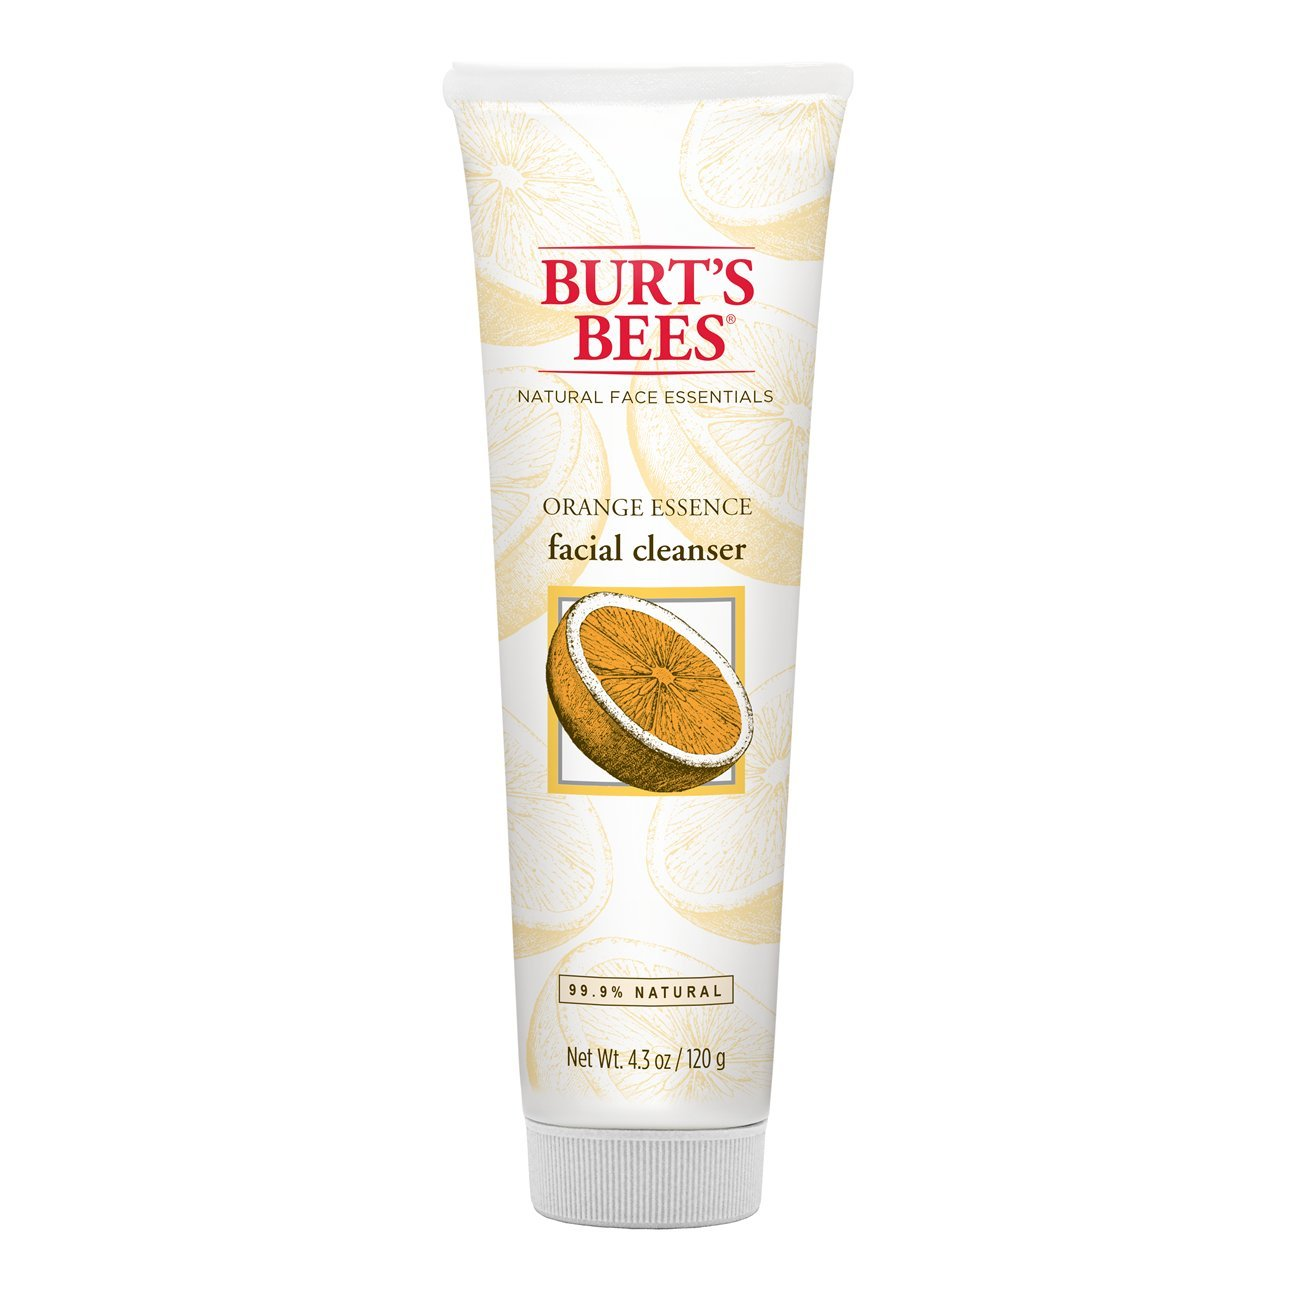 Burt's Bees Orange Essence Facial Cleanser, 4.34 Ounces, Pack of 3 Burt' s Bees